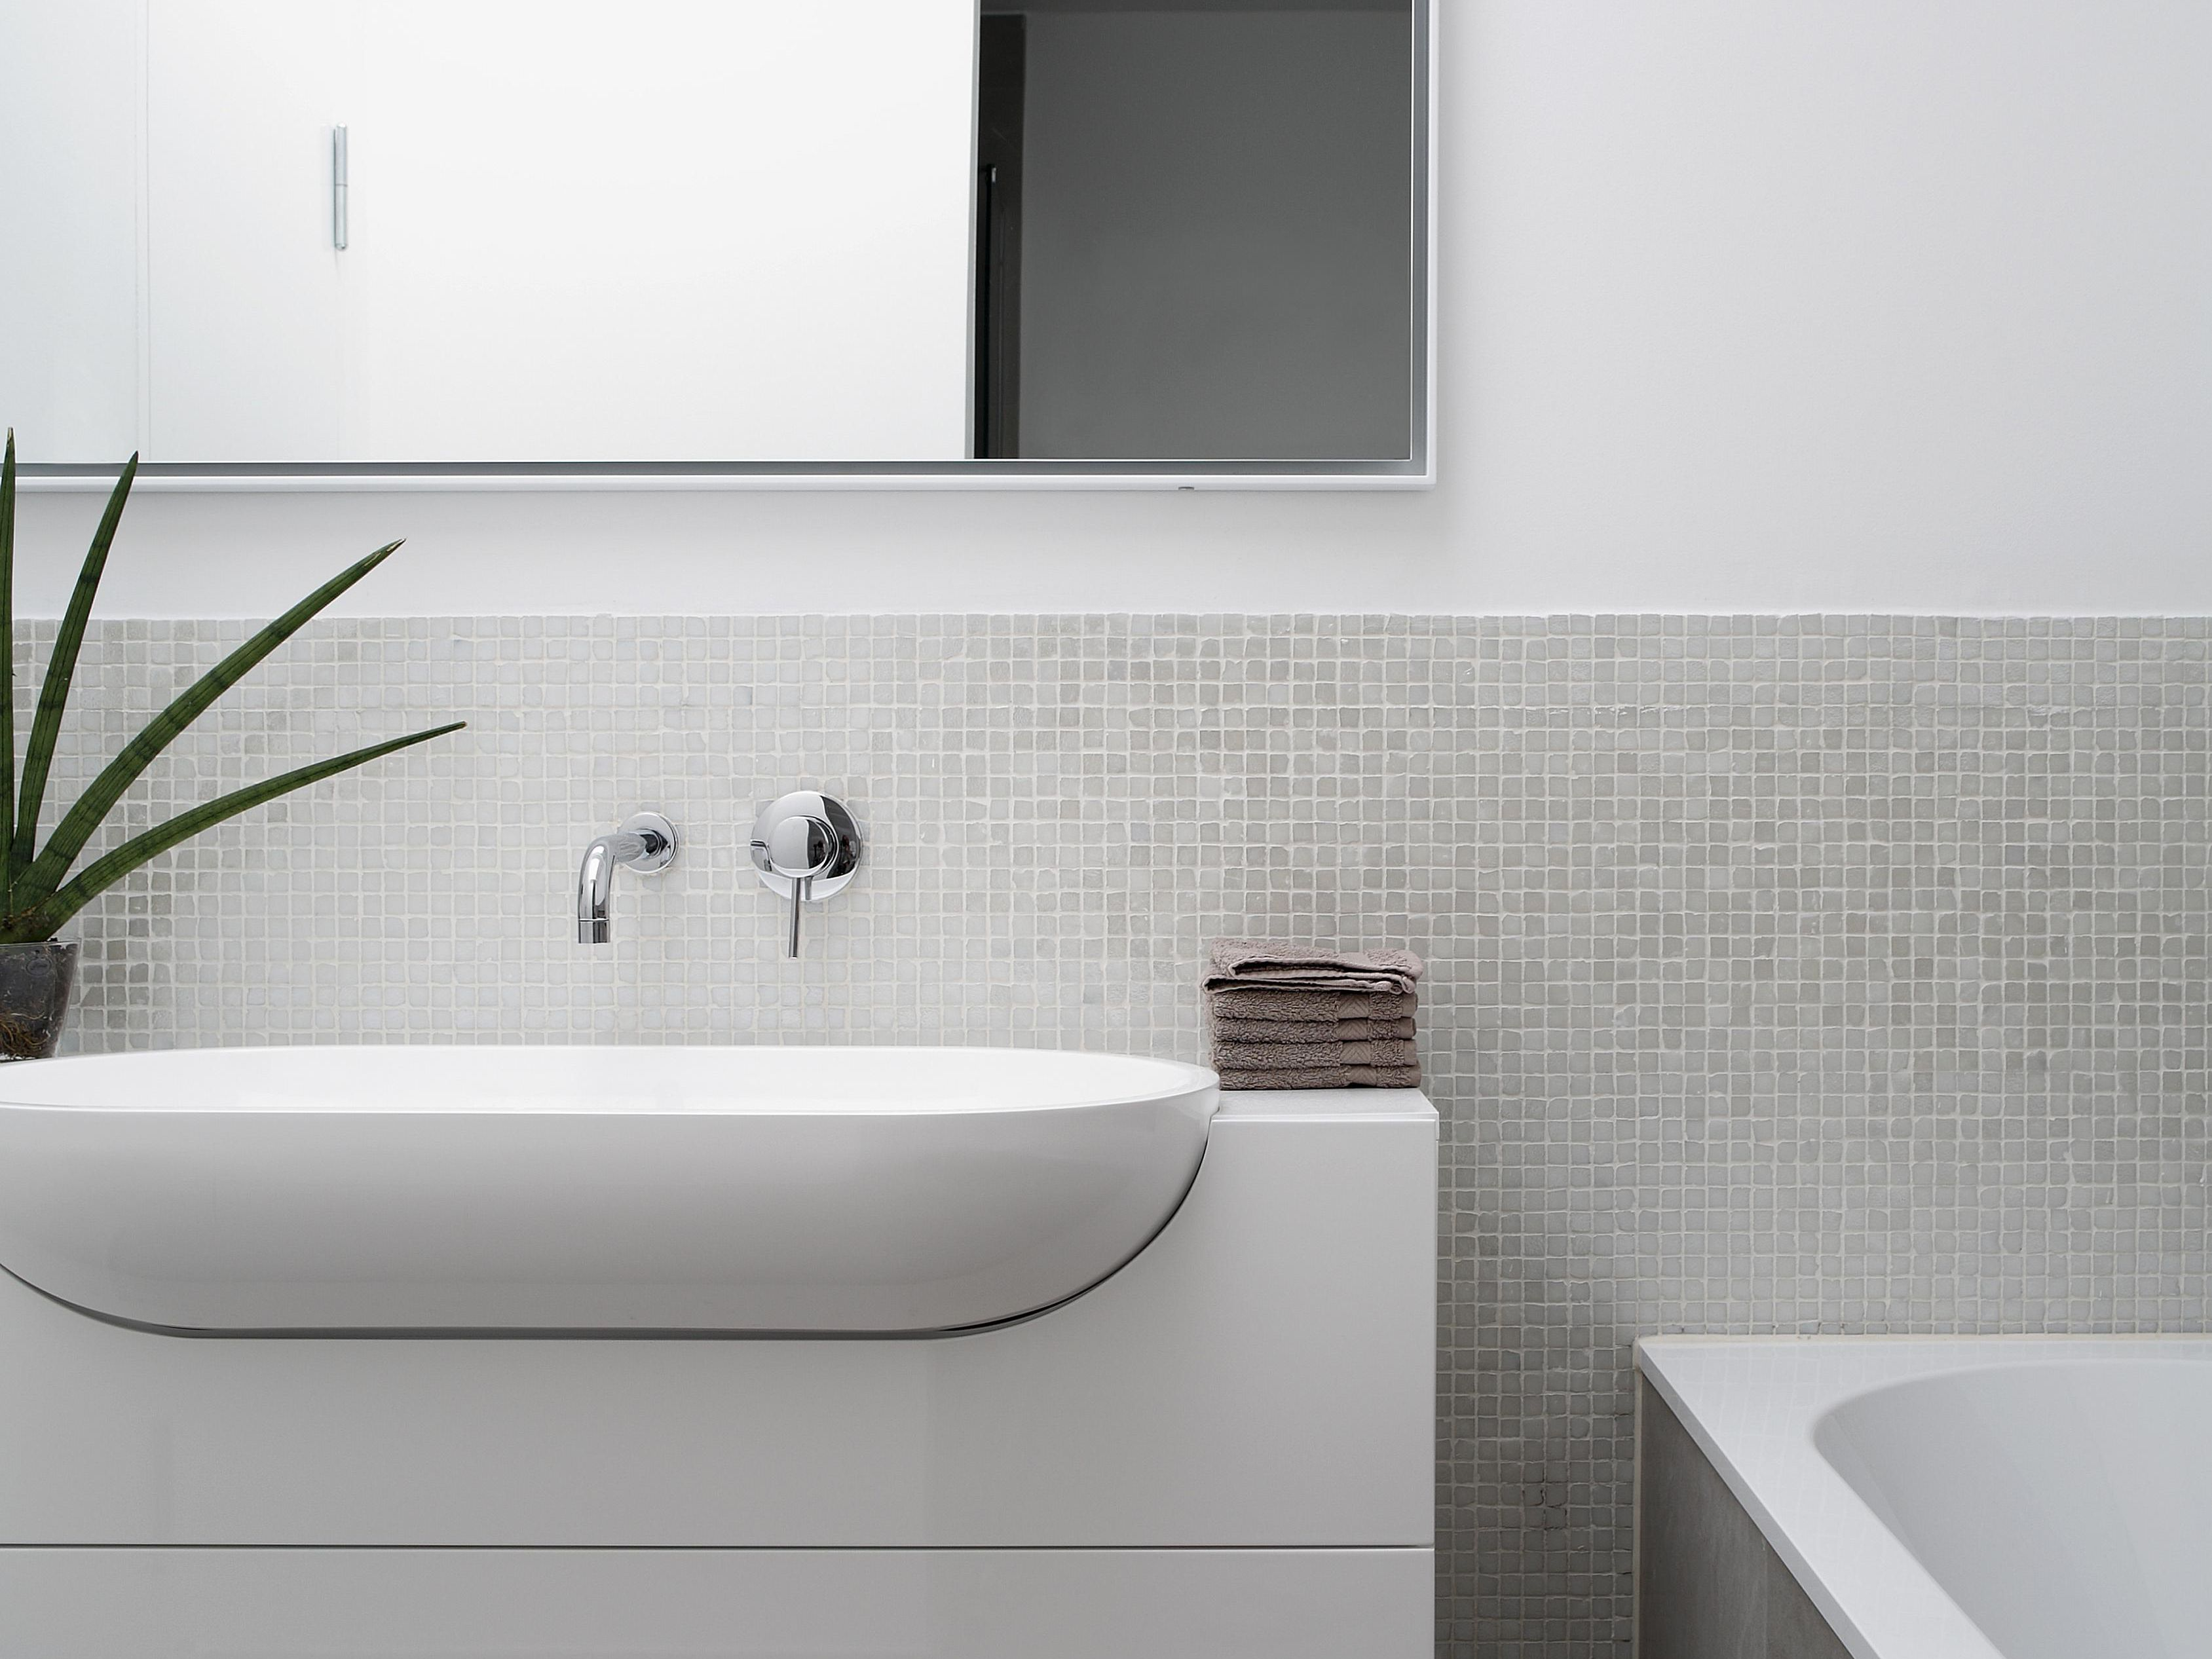 5 Easy Ways To Cut Your Bathroom Renovation Costs